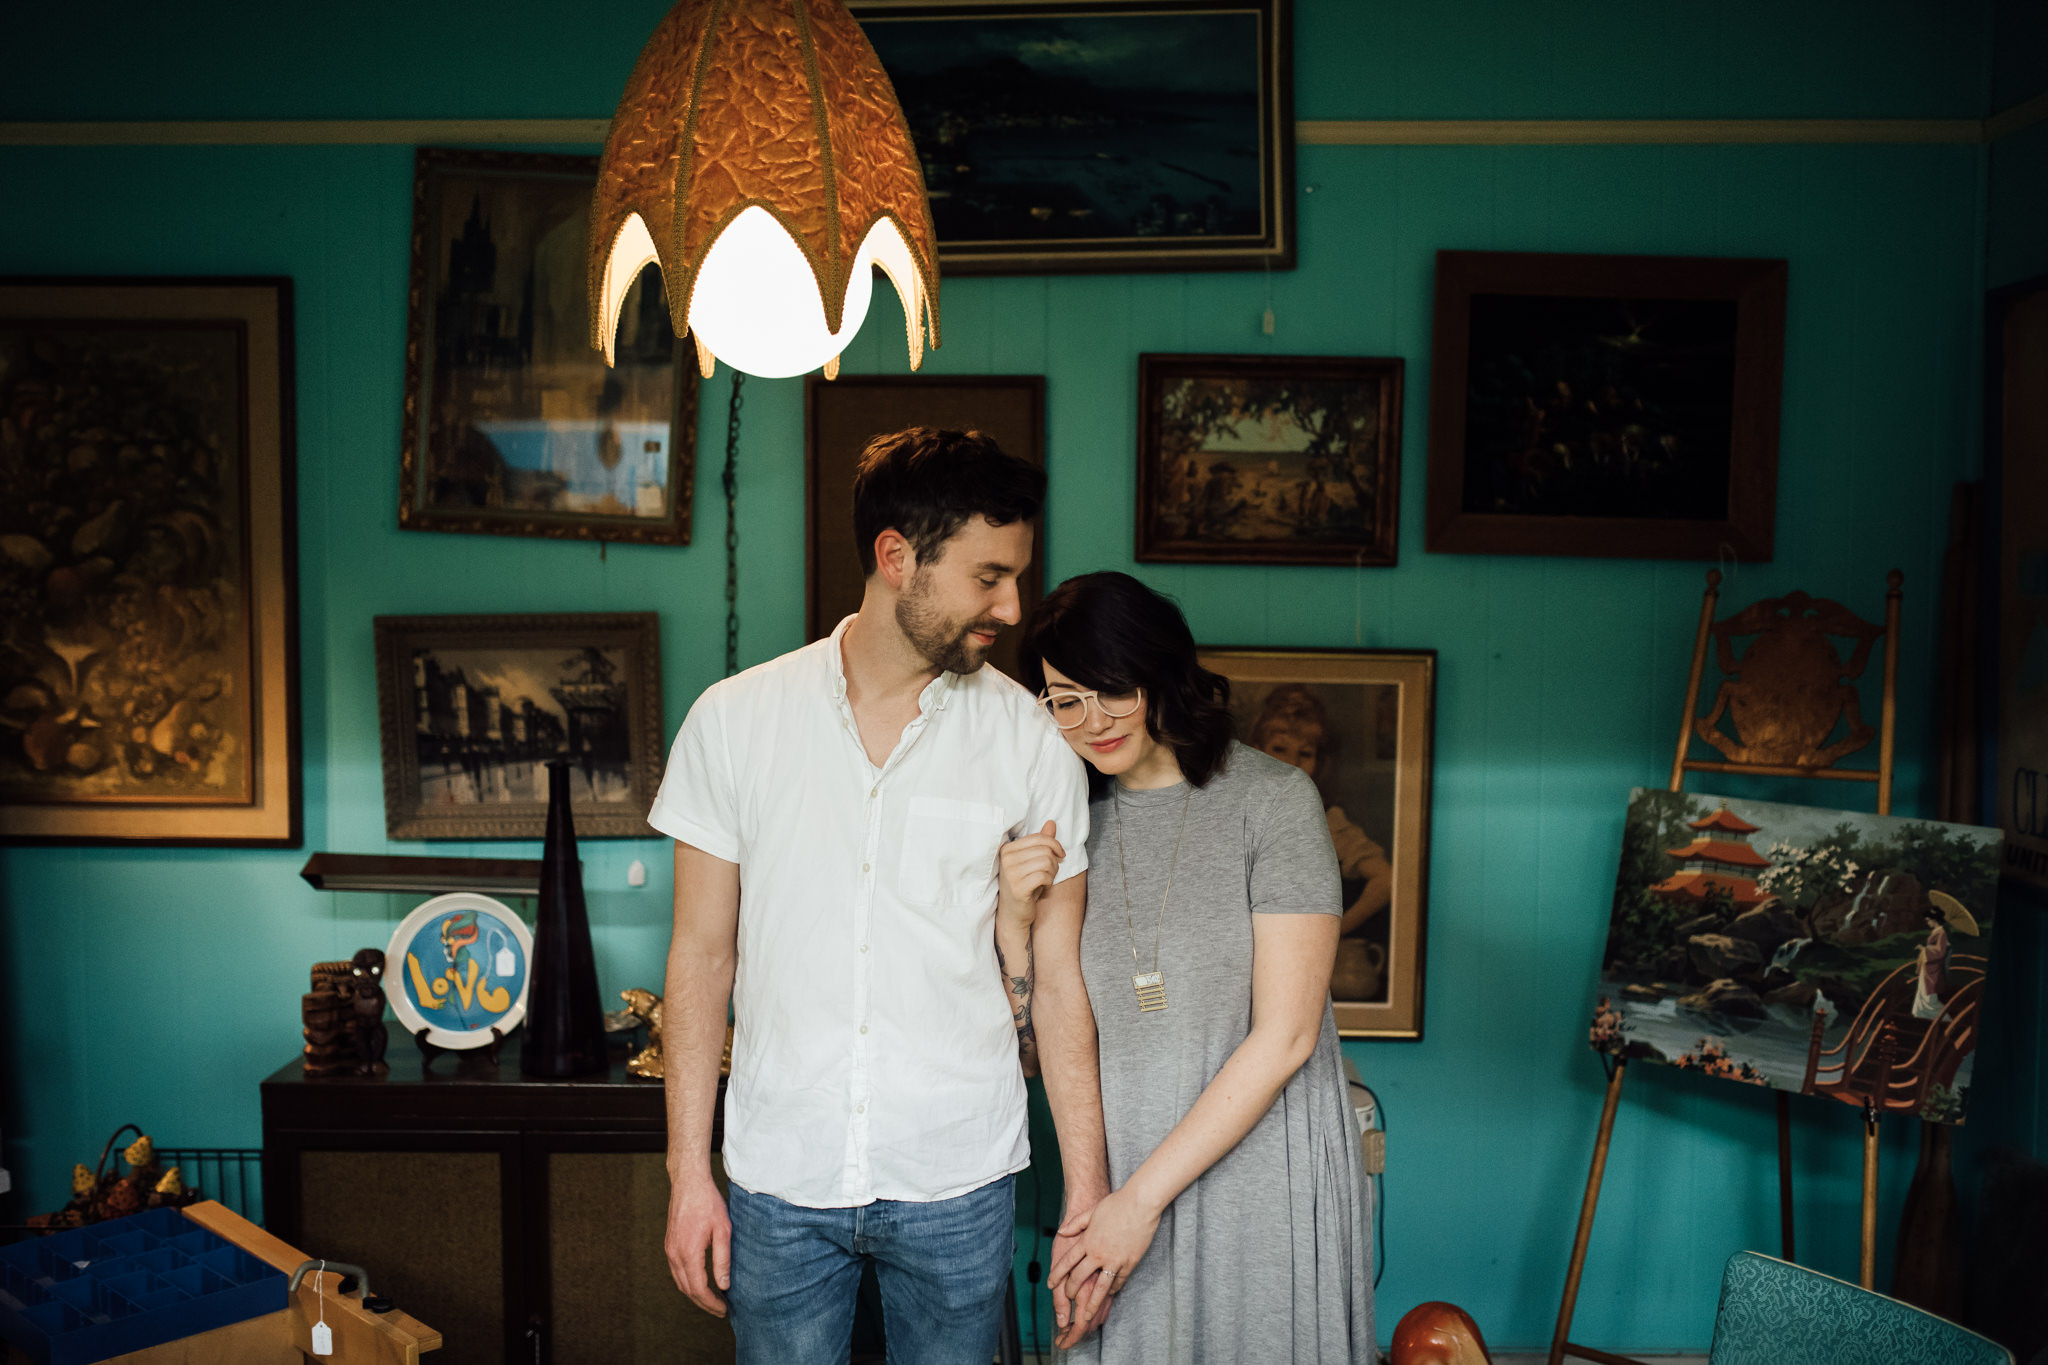 memphis-wedding-photographer-the-warmth-around-you-unique-colorful-engagement-pictures (9 of 80).jpg